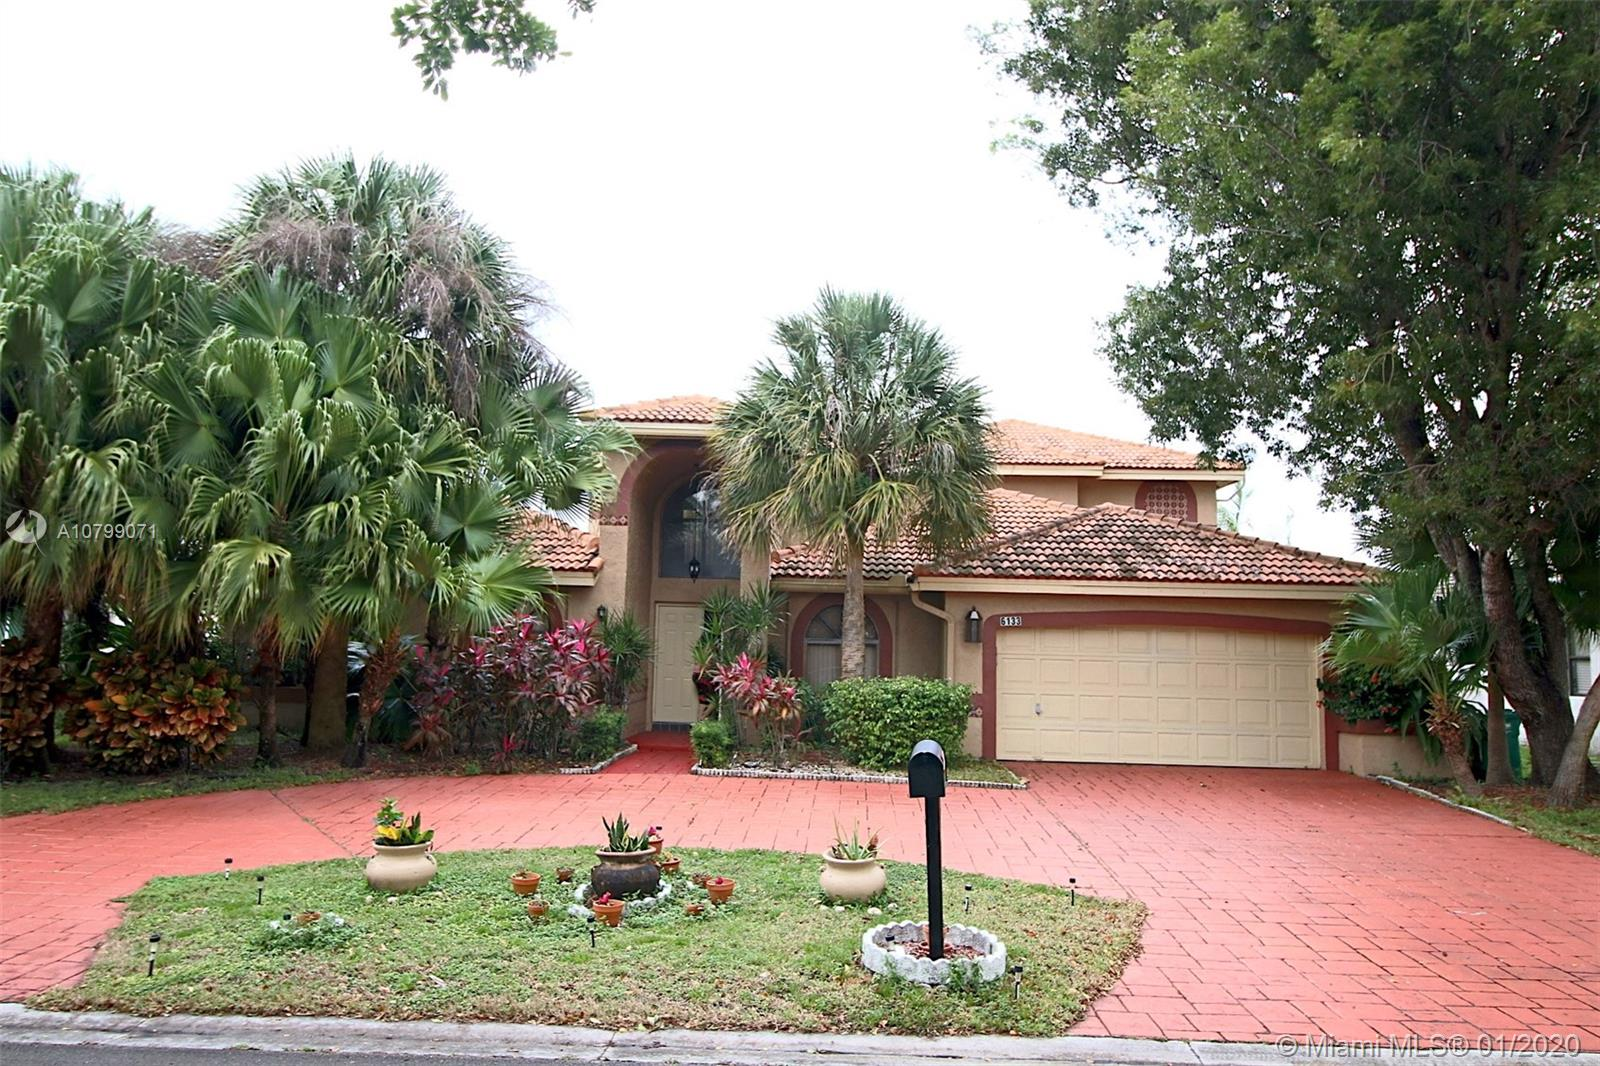 STUNNING 2 STORY POOL HOME. GREAT LAYOUT INSIDE TO ACCOMMODATE THE ENTIRE FAMILY.  THE KITCHEN AND FAMILY ARE GREAT FOR FAMILY EVENTS AND ENTERTAINING. IF YOU WANT TO ENJOY THE OUTDOORS, HEAD OUT TO THE POOL AND ENJOY THE FLORIDA WEATHER. YOU CAN SIT OUTSIDE AND RELAX WITH THE NICE VIEW OF THE LAKE AND THE SERENE SOUNDS OF THE WATERFALL. COME OVER AND VISIT!!